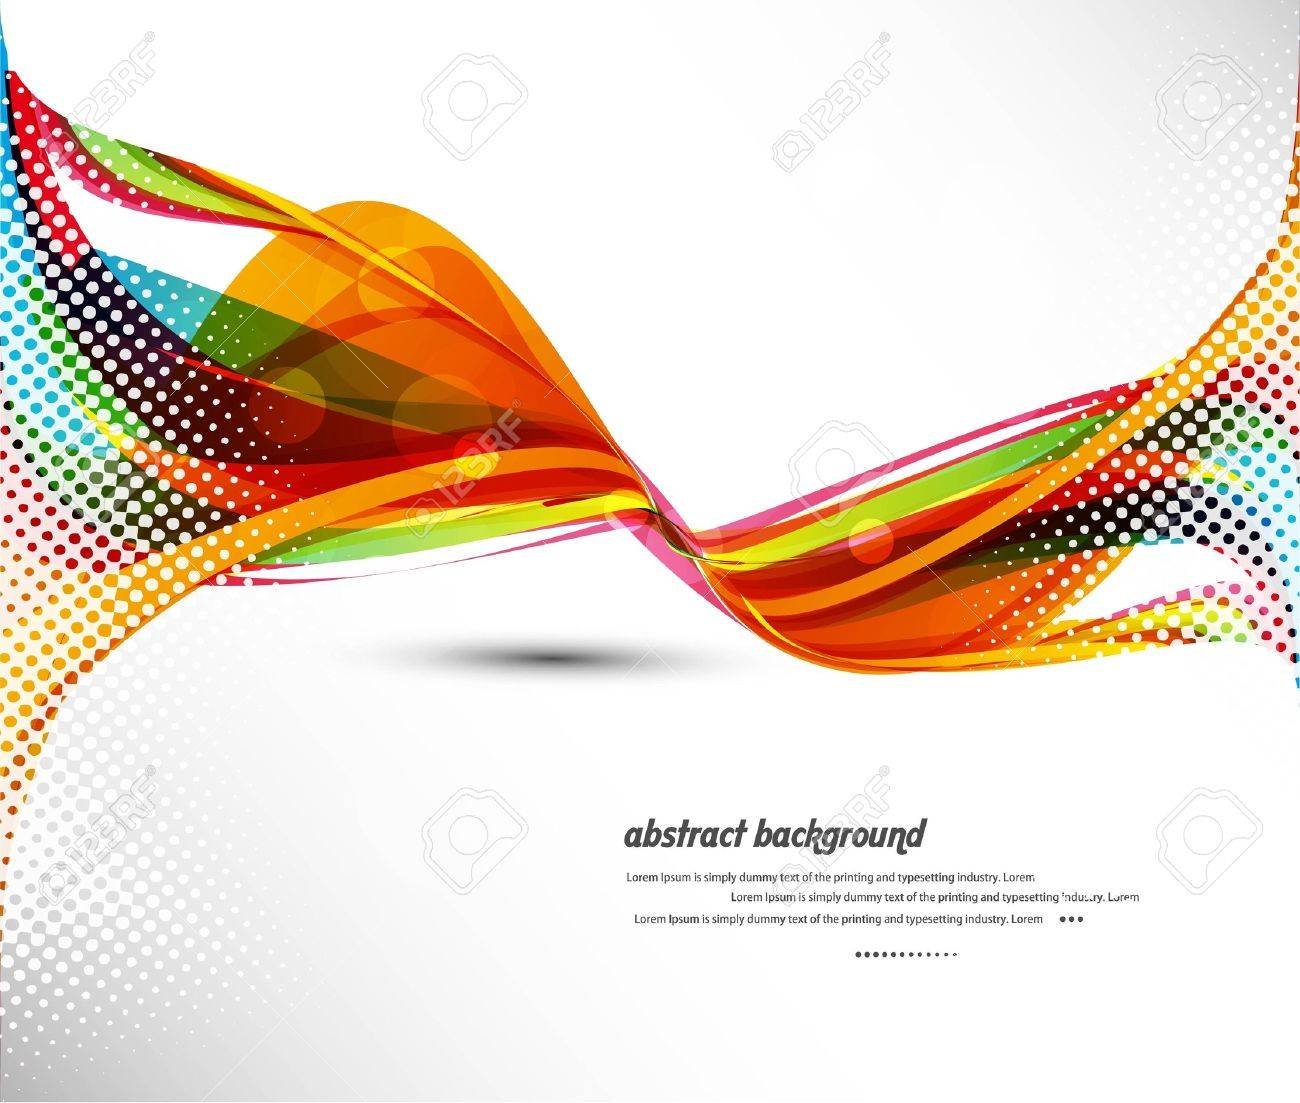 abstract design colorful new rainbow wave vector image illustration Stock Vector - 19260056